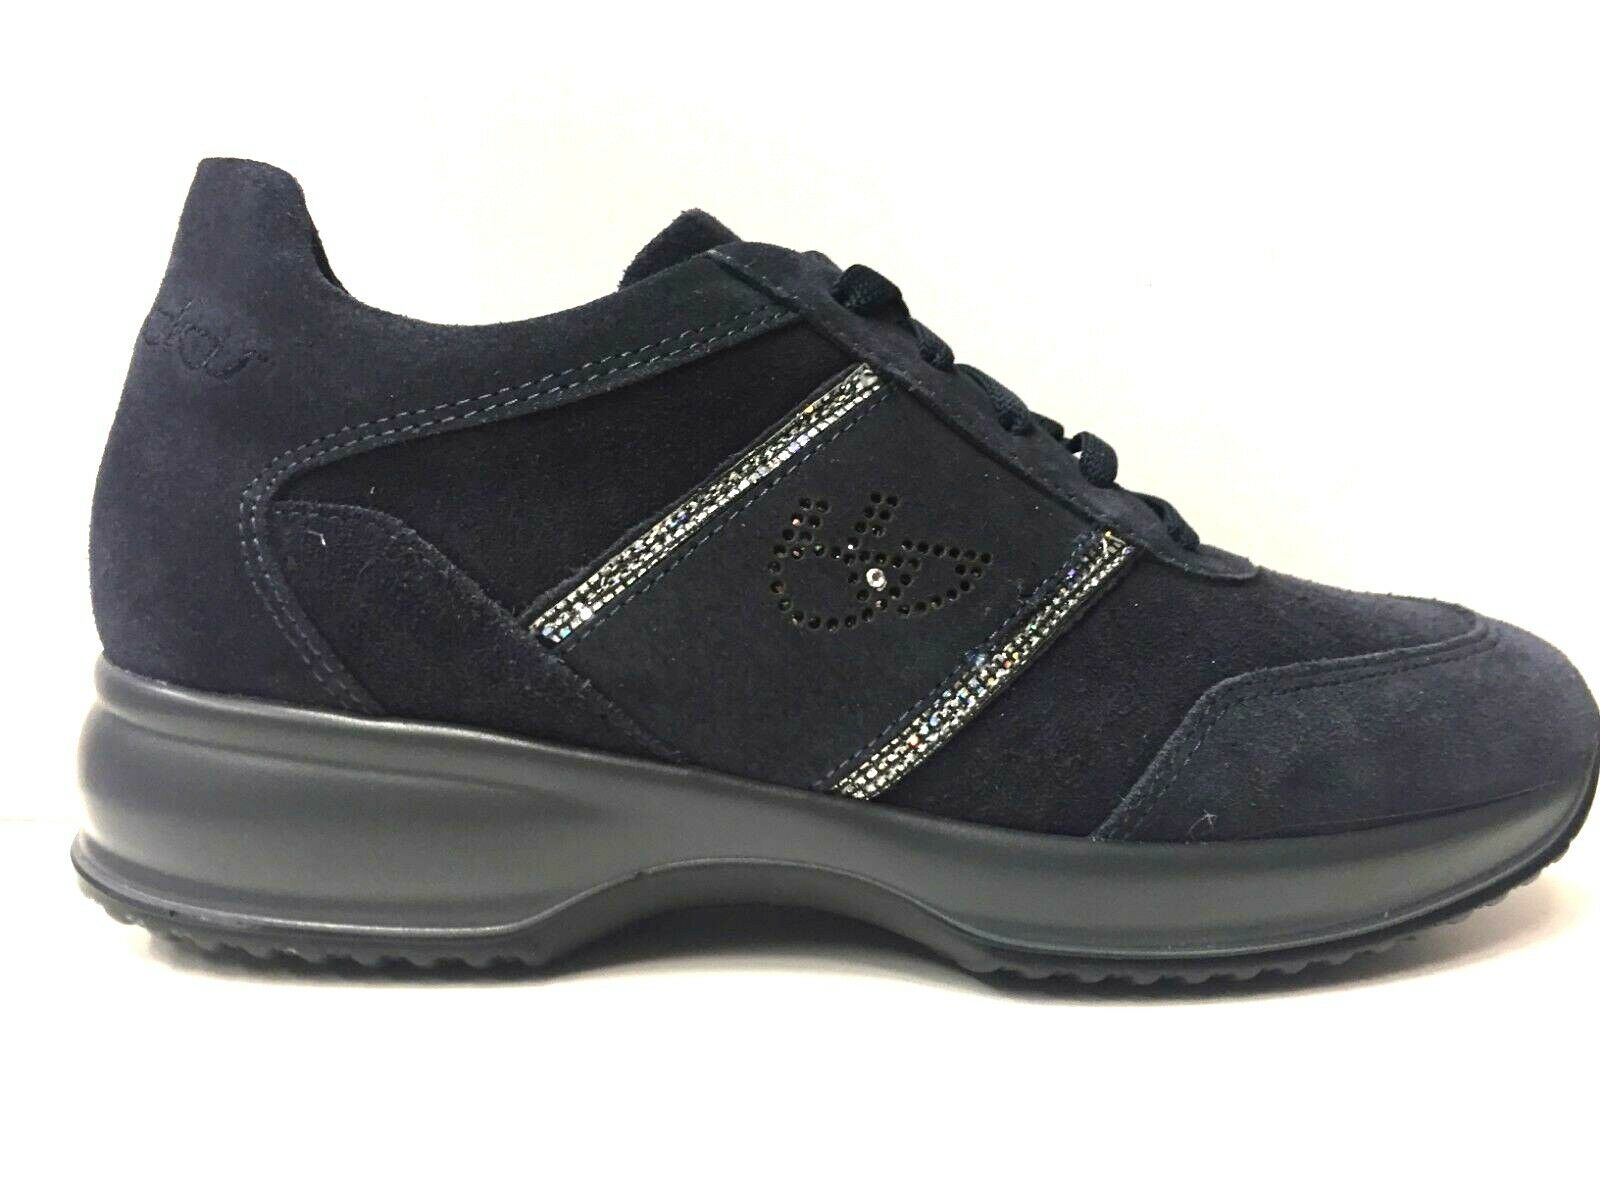 SCARPE SNEAKERS CASUAL DONNA BYBLOS ORIGINALE 695791 PELLE SHOES BLU  A/I NEW